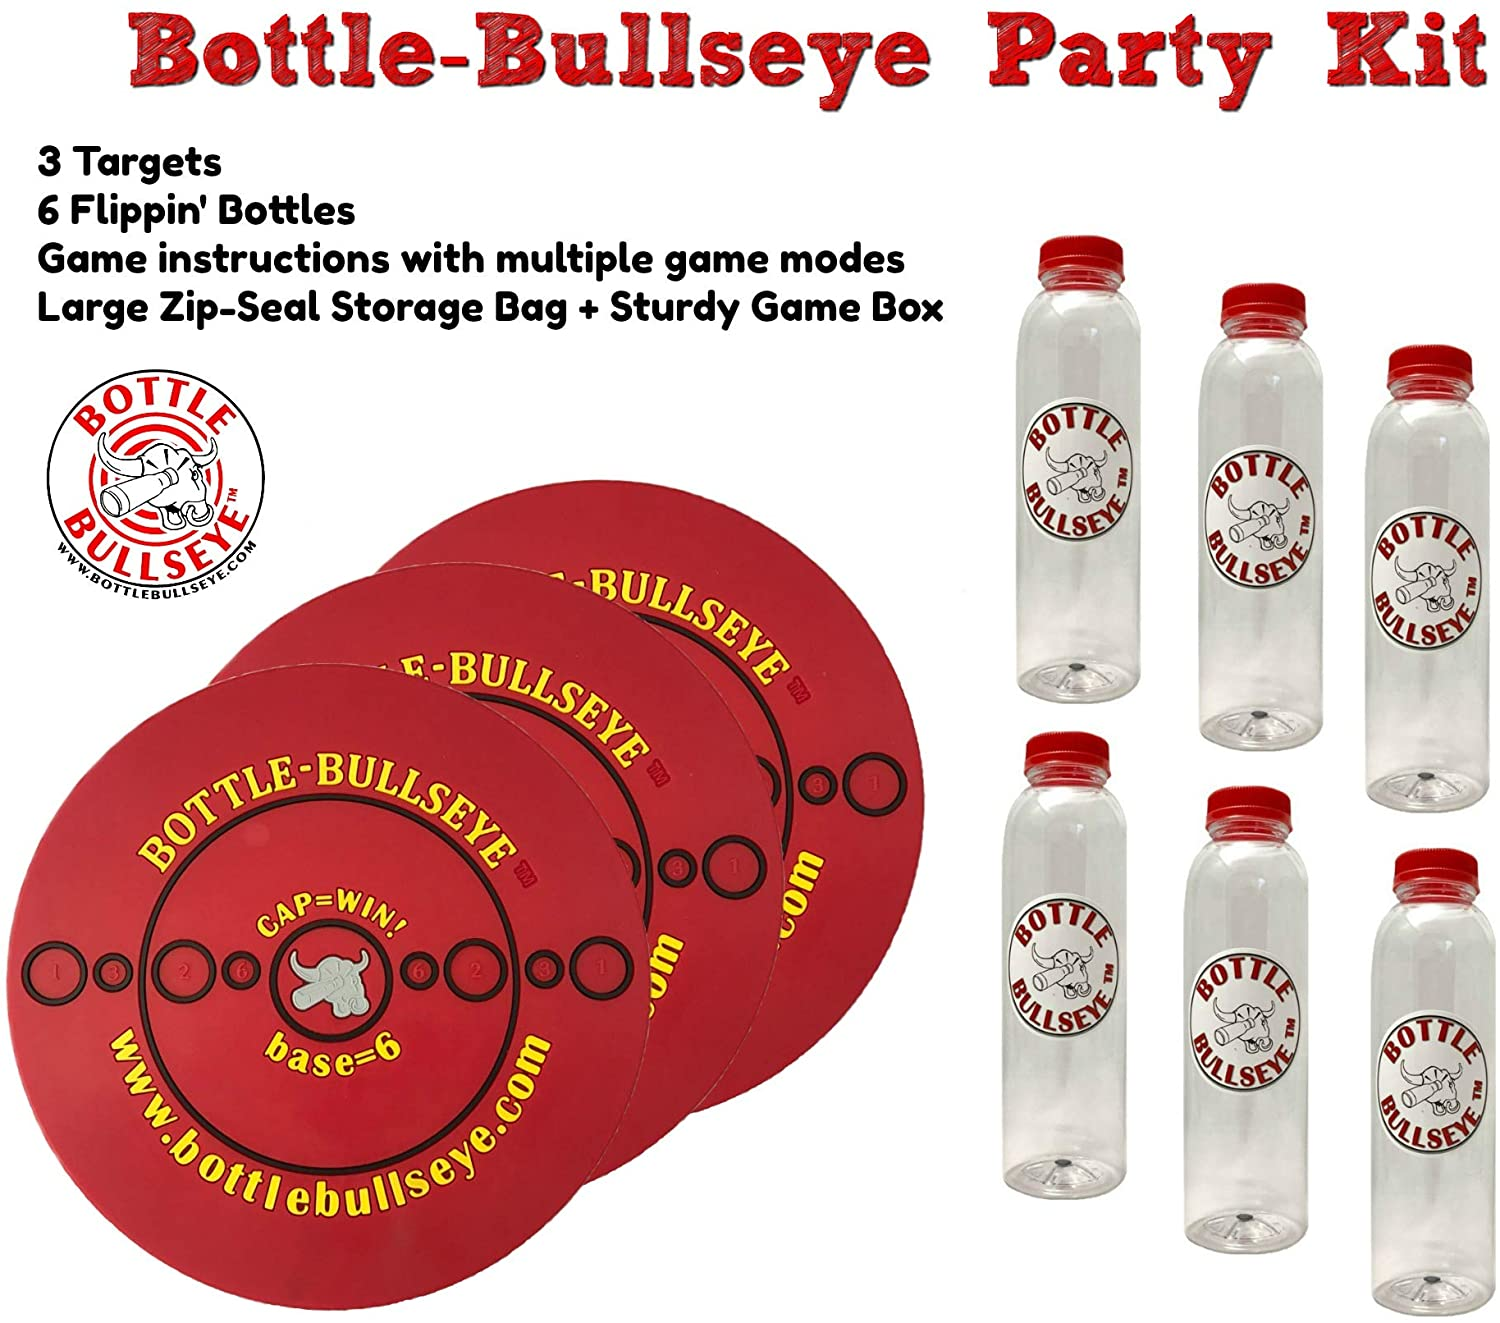 Bottle-Bullseye Party Kit. Fun Indoor & Outdoor Game Like Darts. Made in The USA. Anyone can Play Almost Anywhere: Parties, picnics, Camping, Tailgating. Durable Weatherproof Target & Bottles!